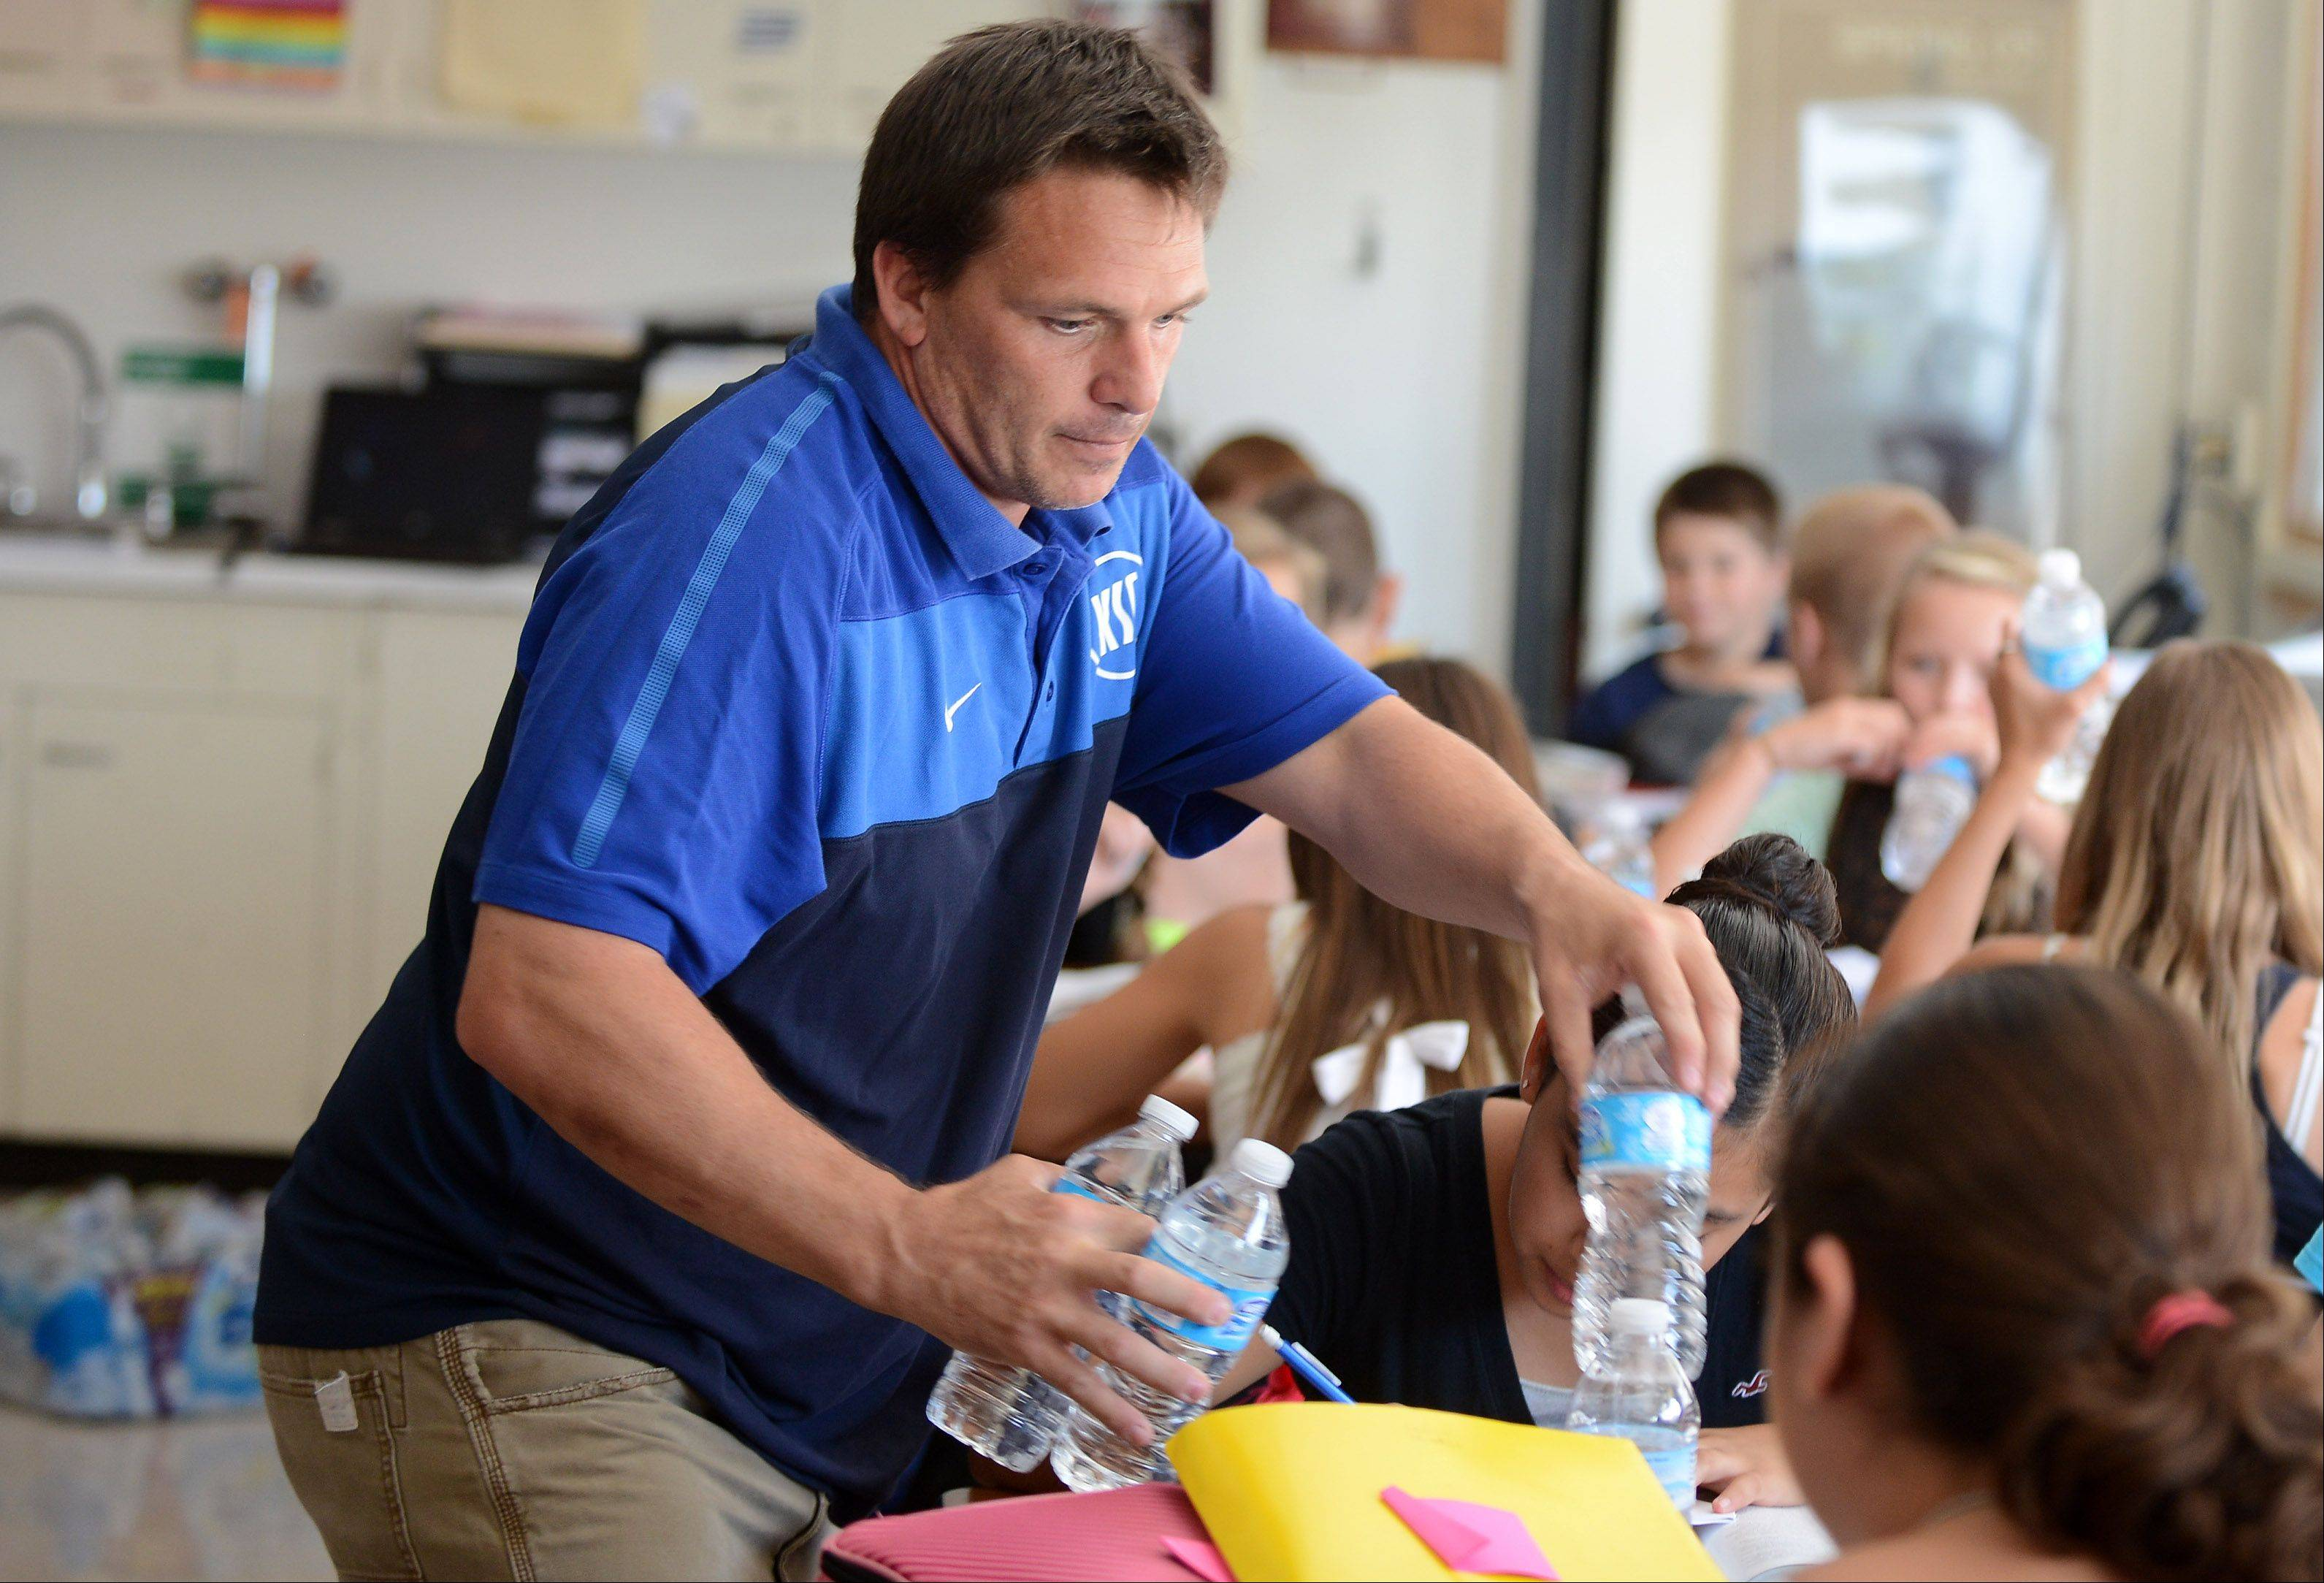 Thompson Middle School social studies teacher Tim Maddie passes out bottle of water to his seventh-grade class while they take a test Tuesday in St. Charles.